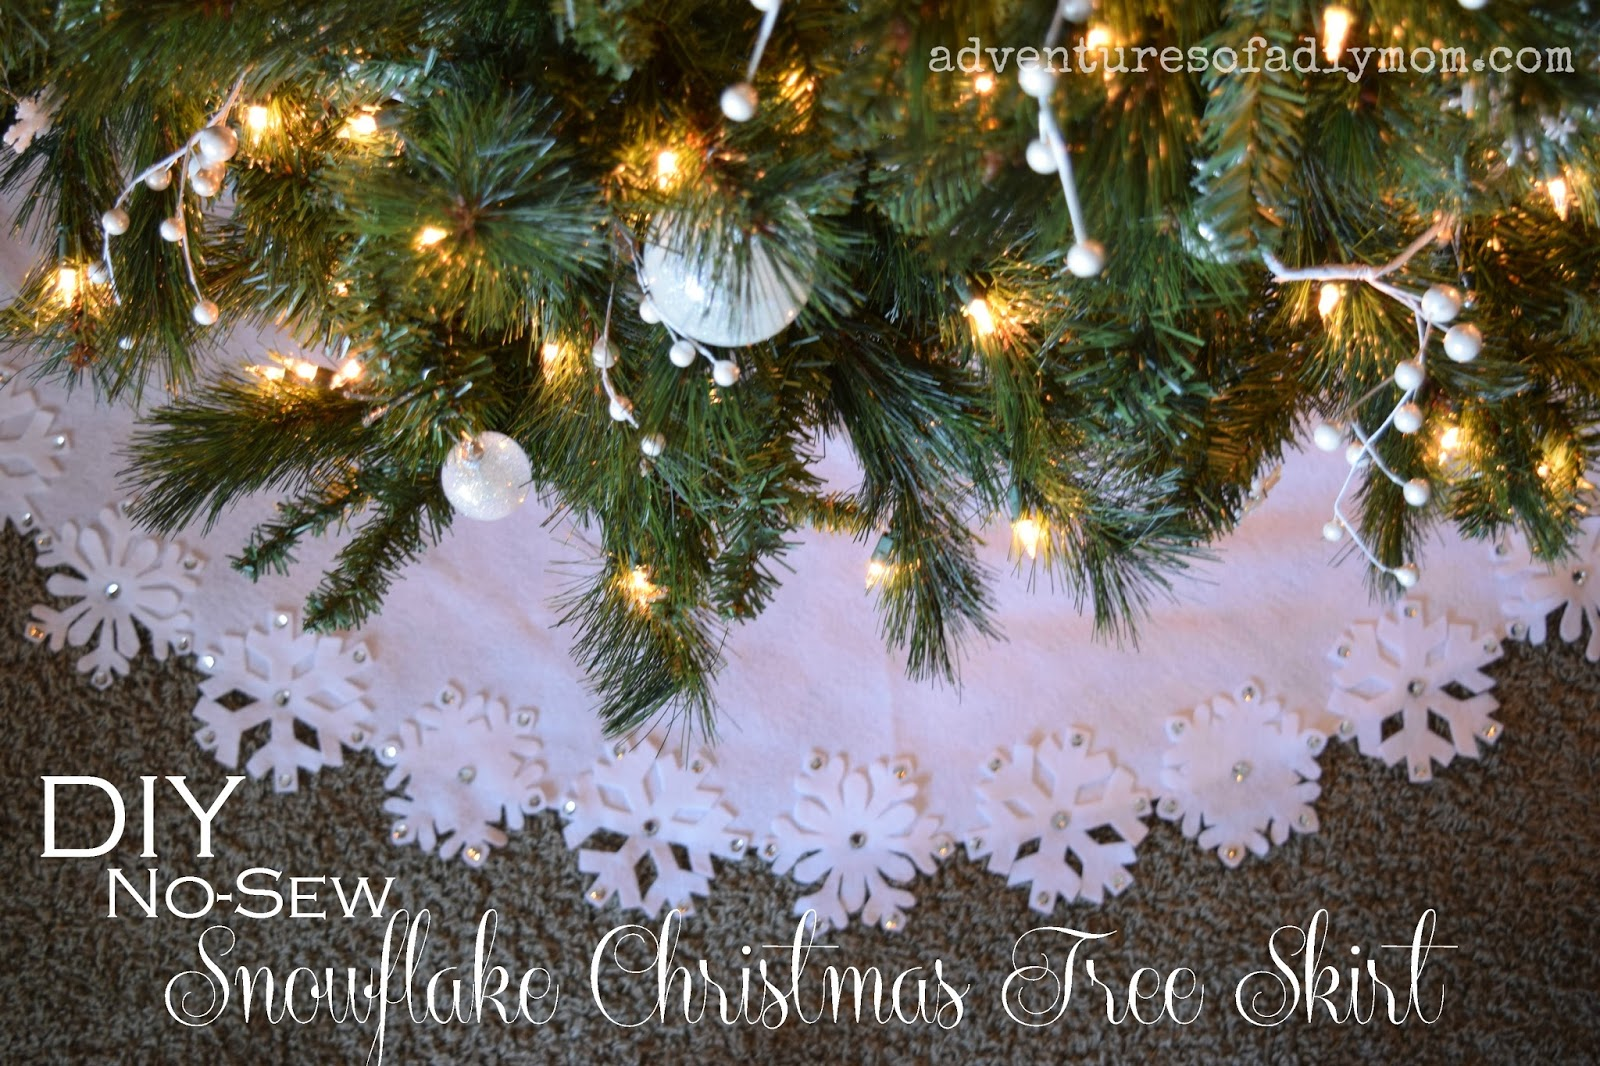 DIY No-Sew Christmas Tree Skirt with Felt Snowflakes - Adventures of ...